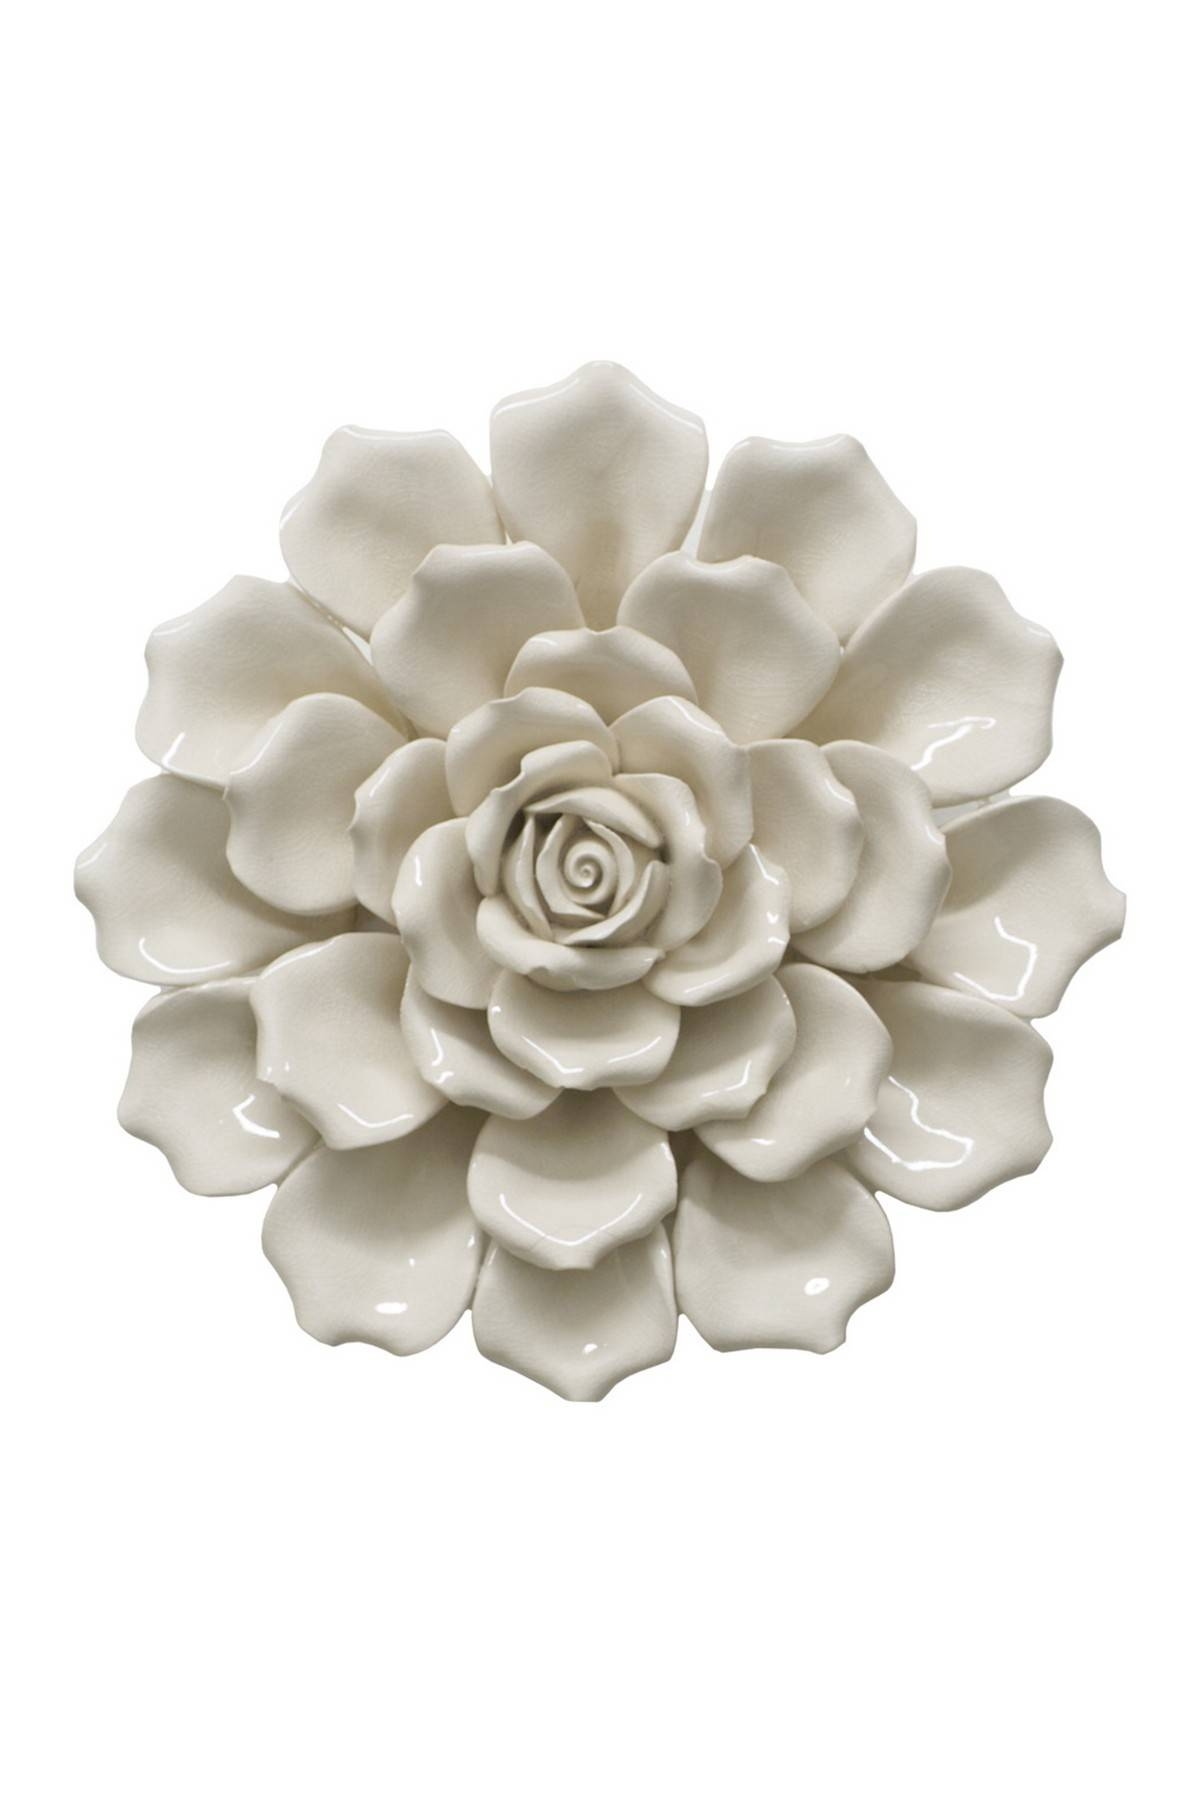 Imposing Ideas Ceramic Flower Wall Decor Spectacular Design Pertaining To Recent Ceramic Flower Wall Art (View 12 of 30)